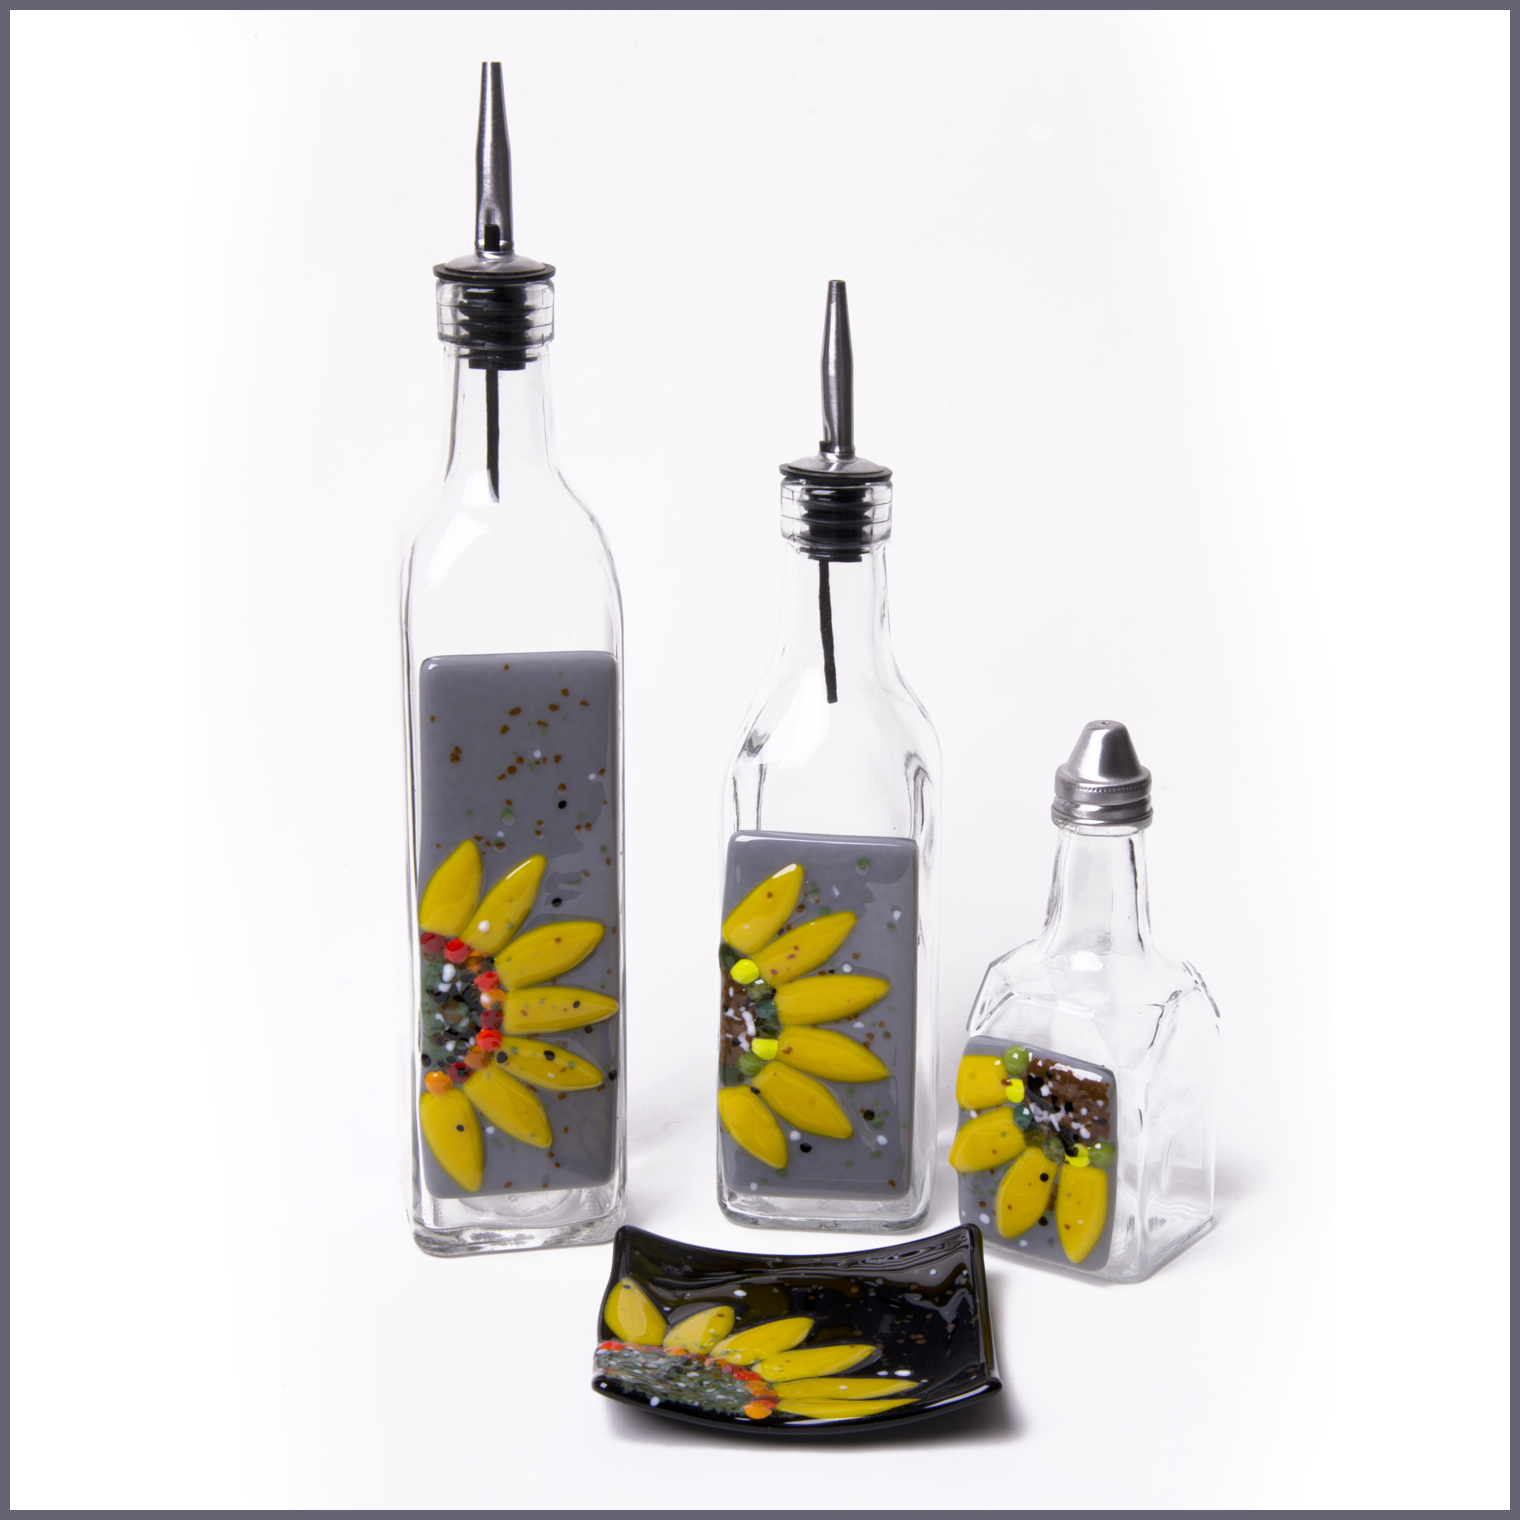 Sunflower glassware art.